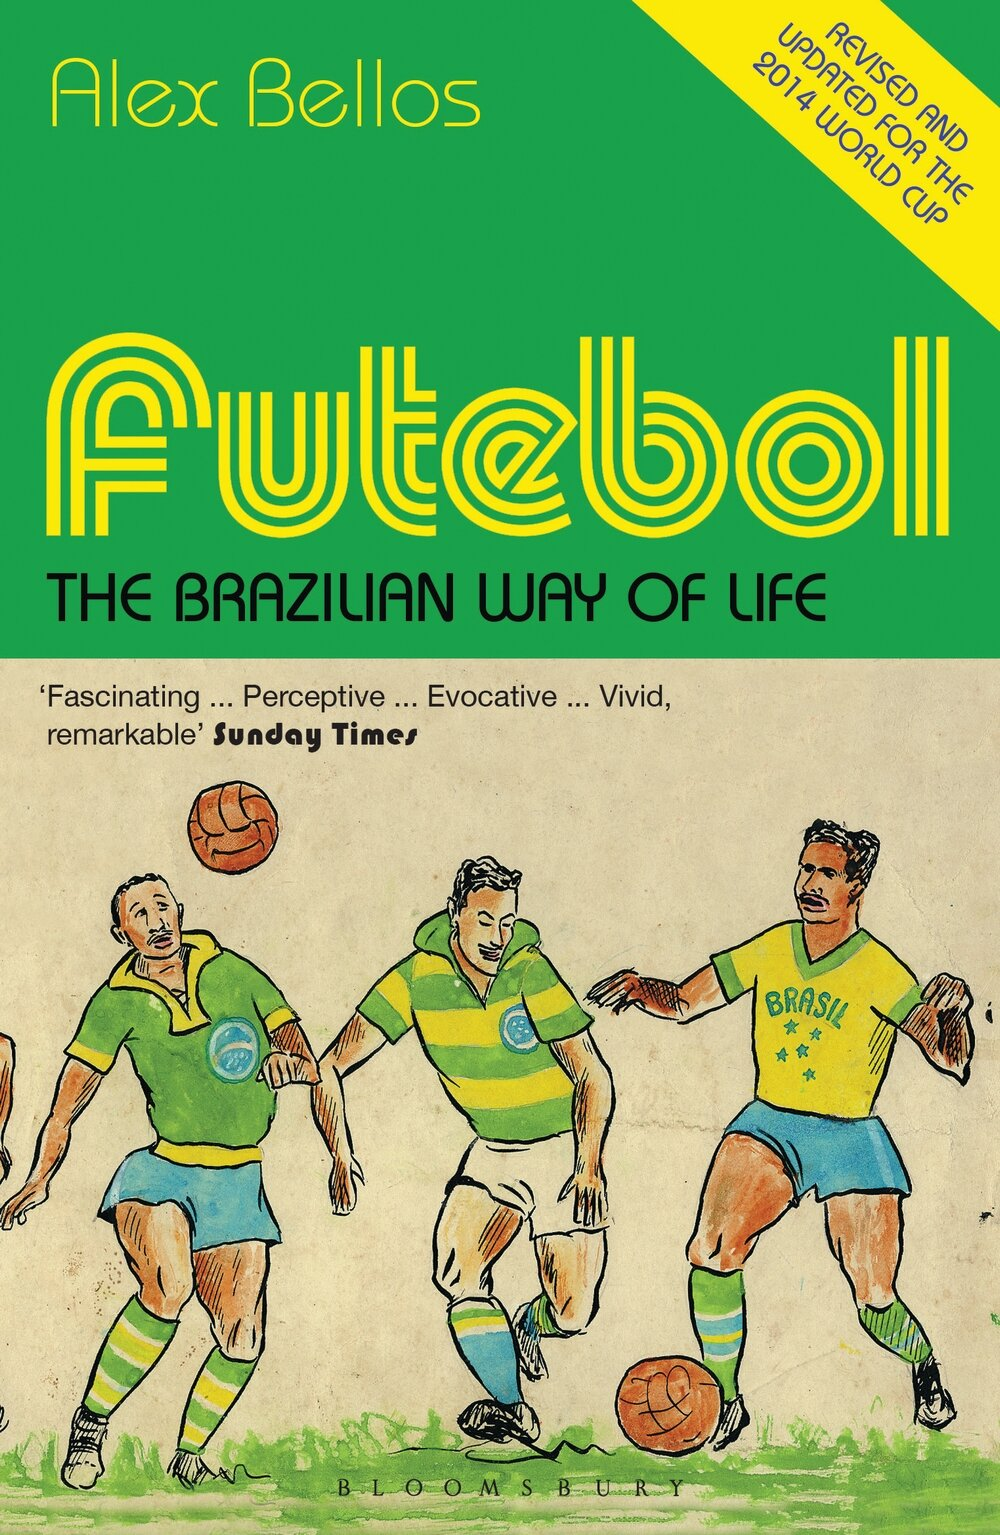 - I lived in Brazil between 1998 and 2003 as the South America correspondent for the Guardian and the Observer. My time there resulted in my first book, Futebol: The Brazilian Way of Life, a look at Brazilian culture through the lens of football. It was nominated at the British Book Awards and the National Sports Book Awards.